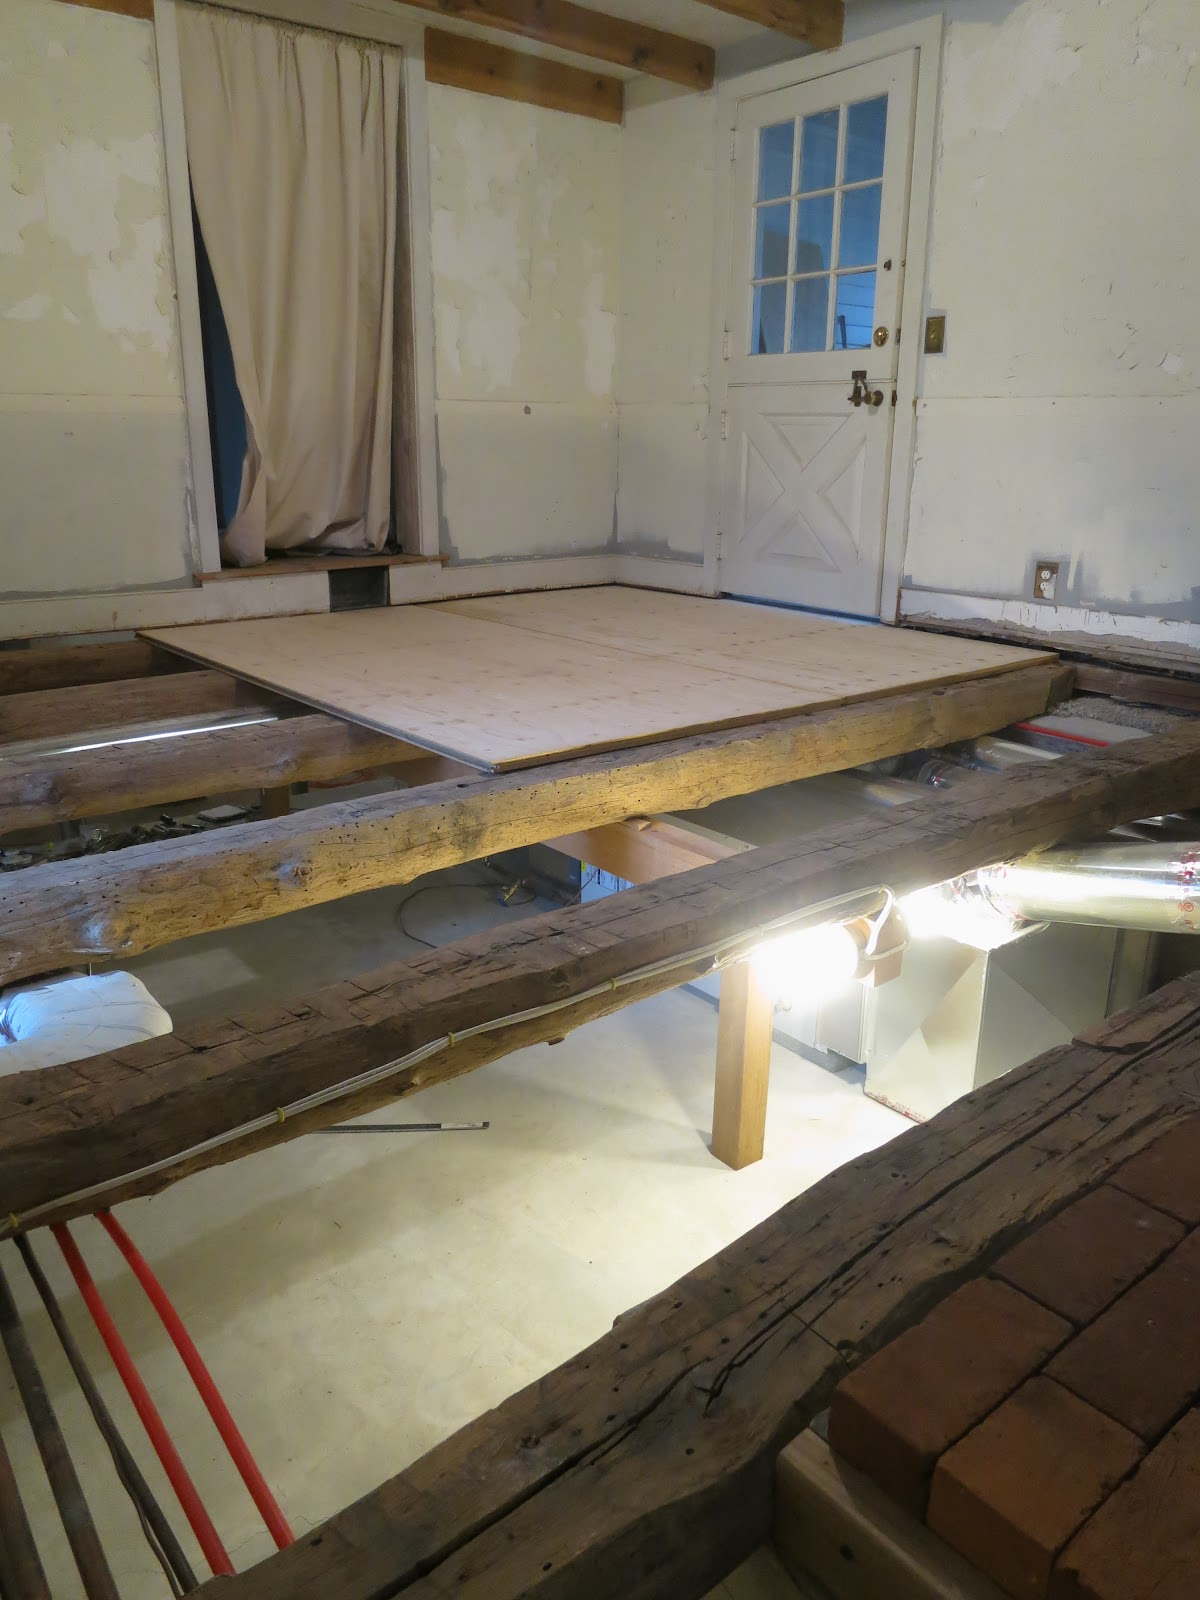 Laying A Subfloor On Old Beams